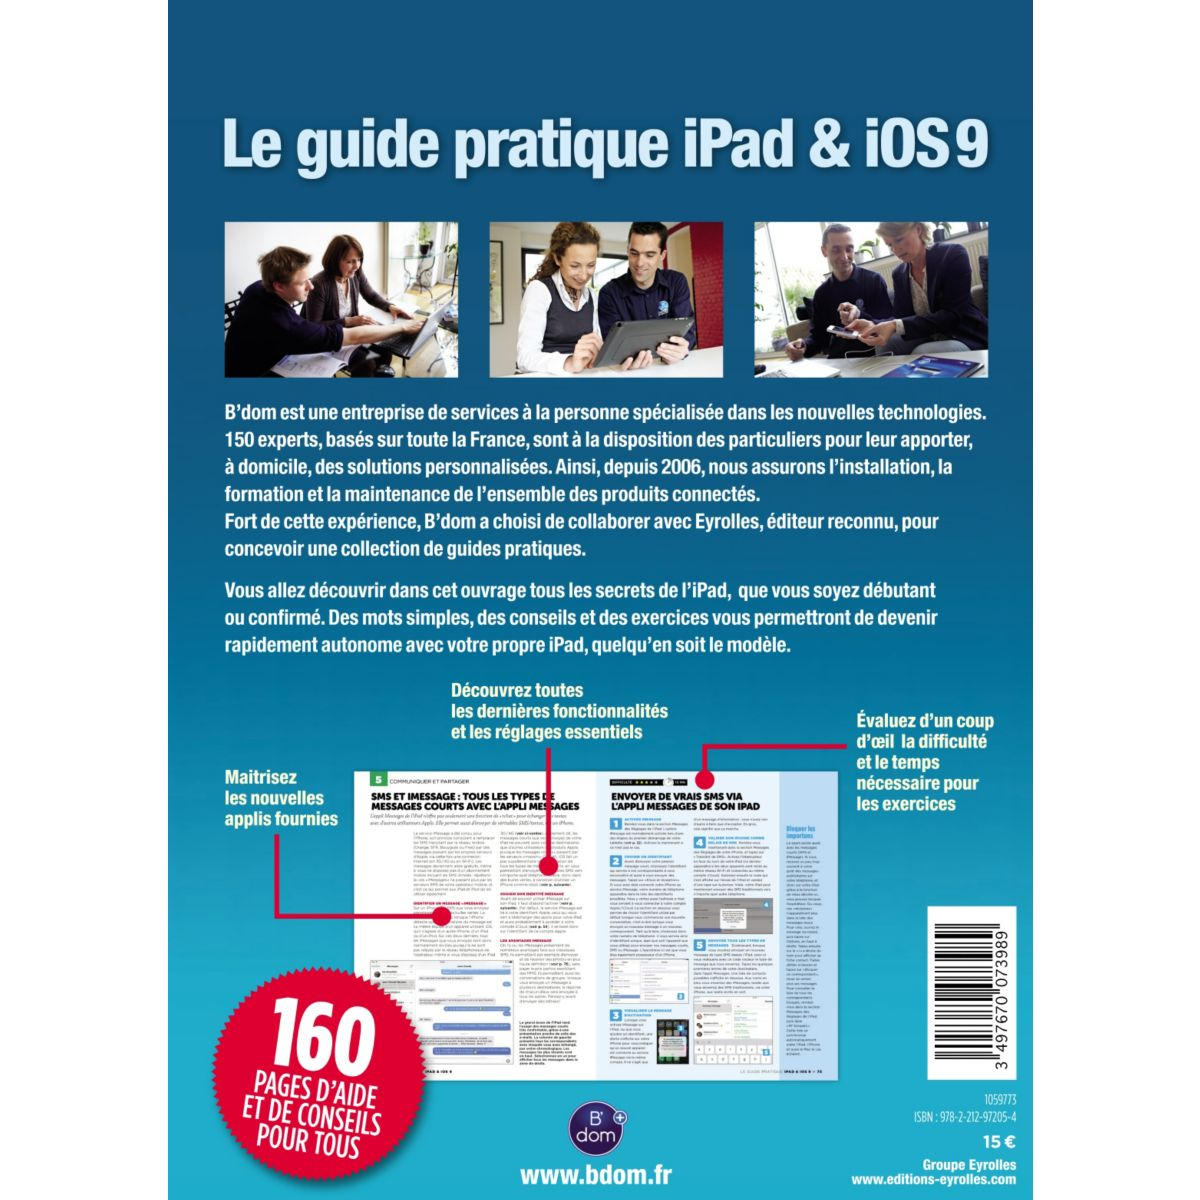 Librairie informatique bdom+ l'univers tablette ipad v2 (photo)